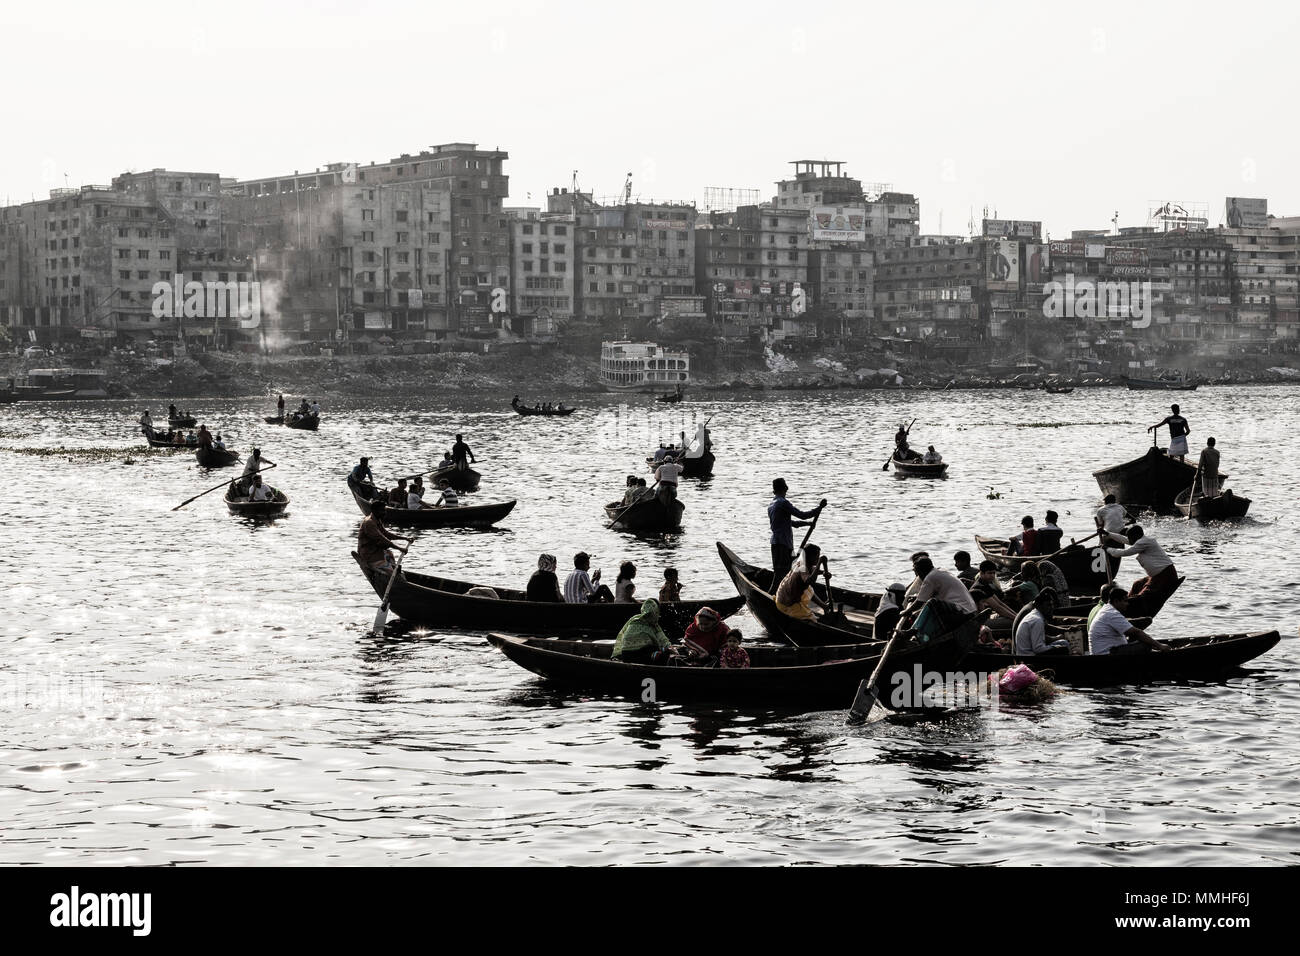 Dhaka, Bangladesh, February 24 2017: Backlit shot of small wooden boats used as a taxi operate on the Buriganga River in Dhaka Bangladesh (Vintage Pho - Stock Image